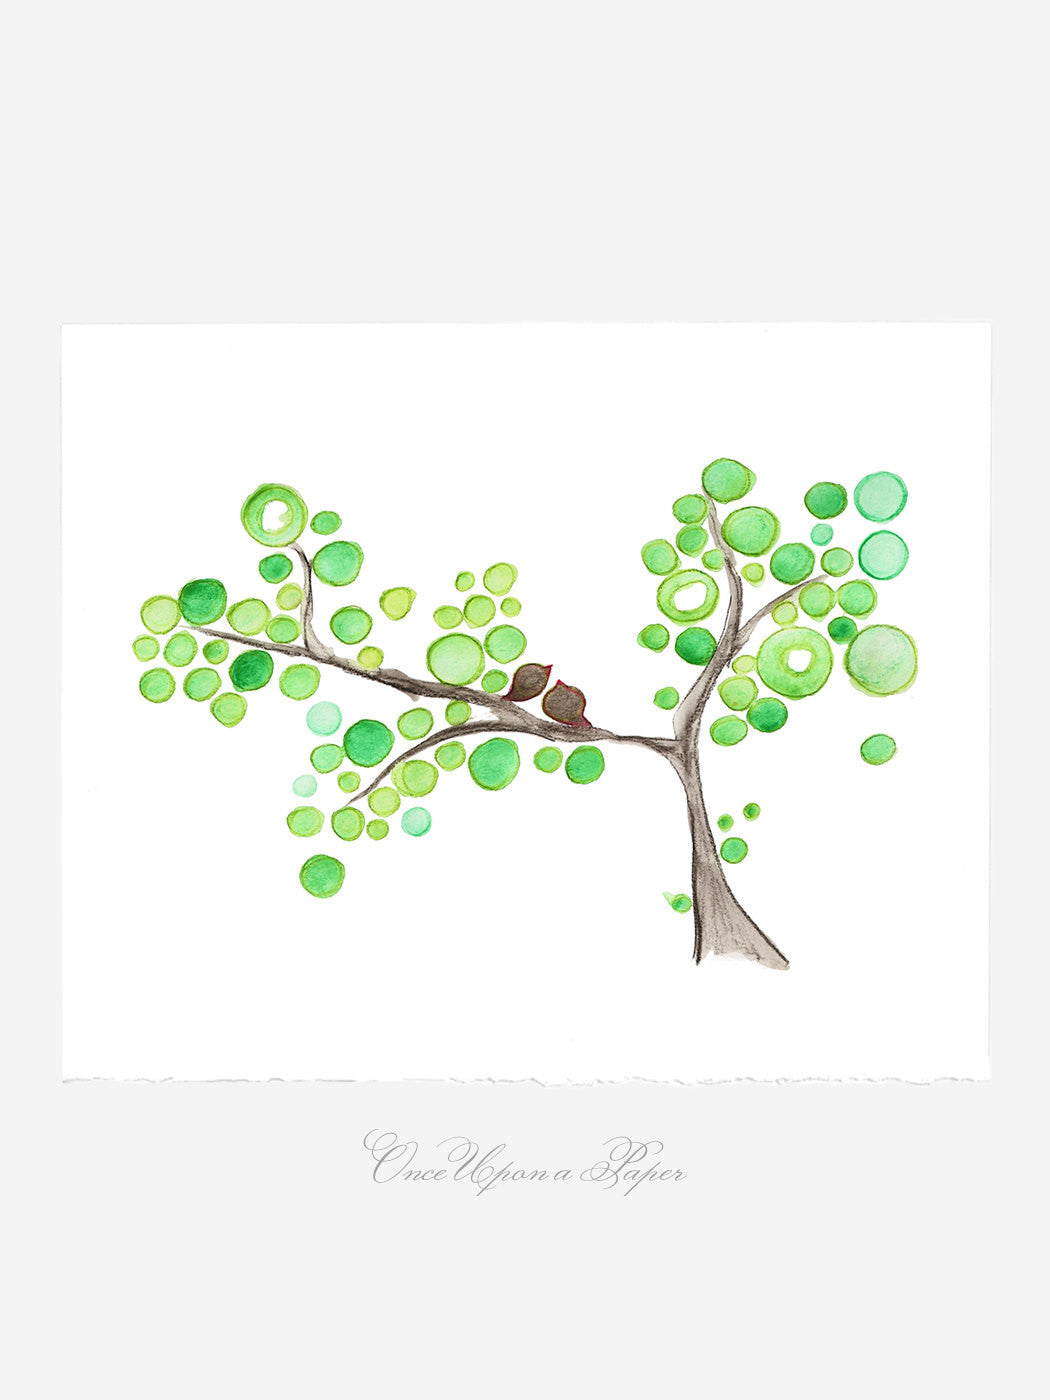 Wedding Gift Anniversary Gift - Early Birds Tree - Giclee Art Print Reproduction of Watercolor Painting -Trees of Life Collection